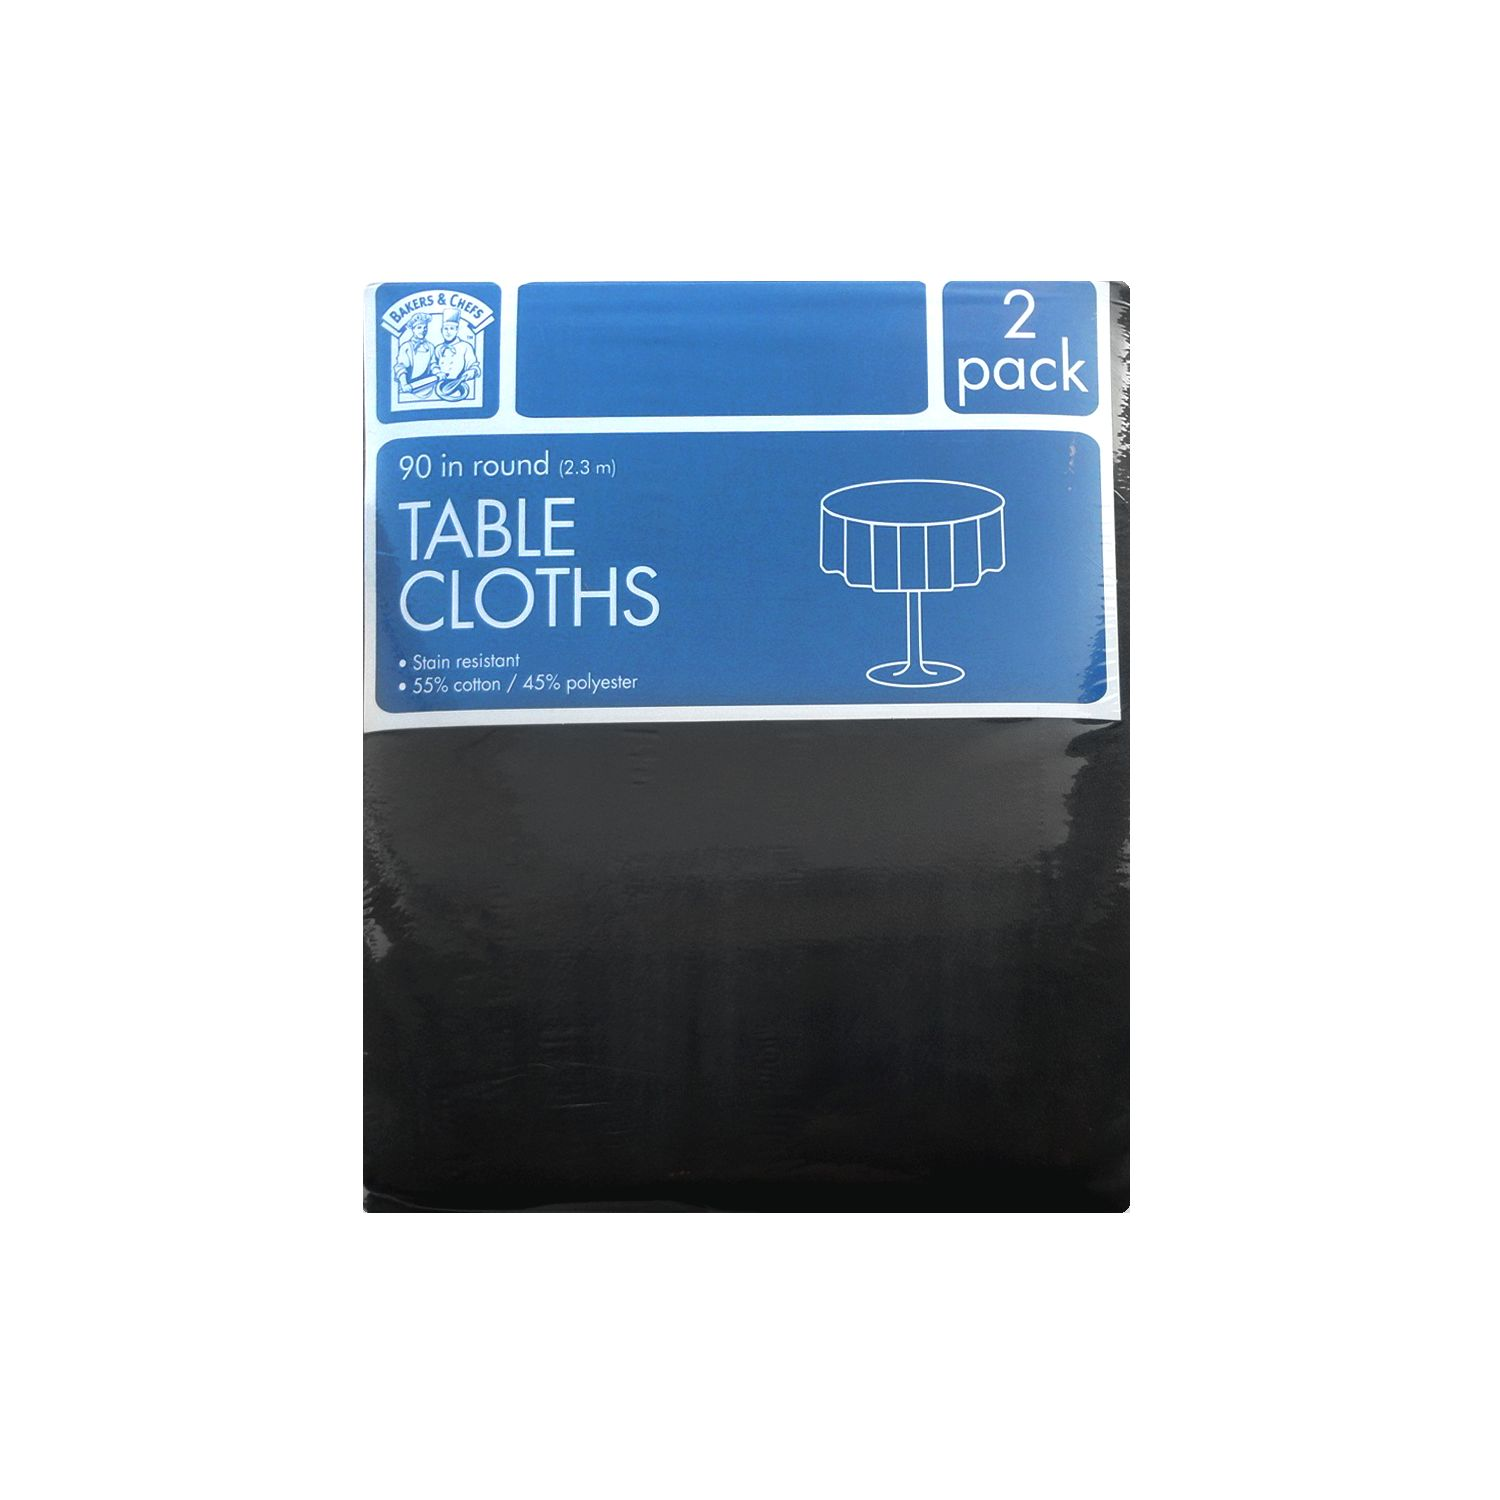 "Bakers & Chef's Bakers & Chefs Round Tablecloth - Black - 90"" - 2 pk. at Sears.com"